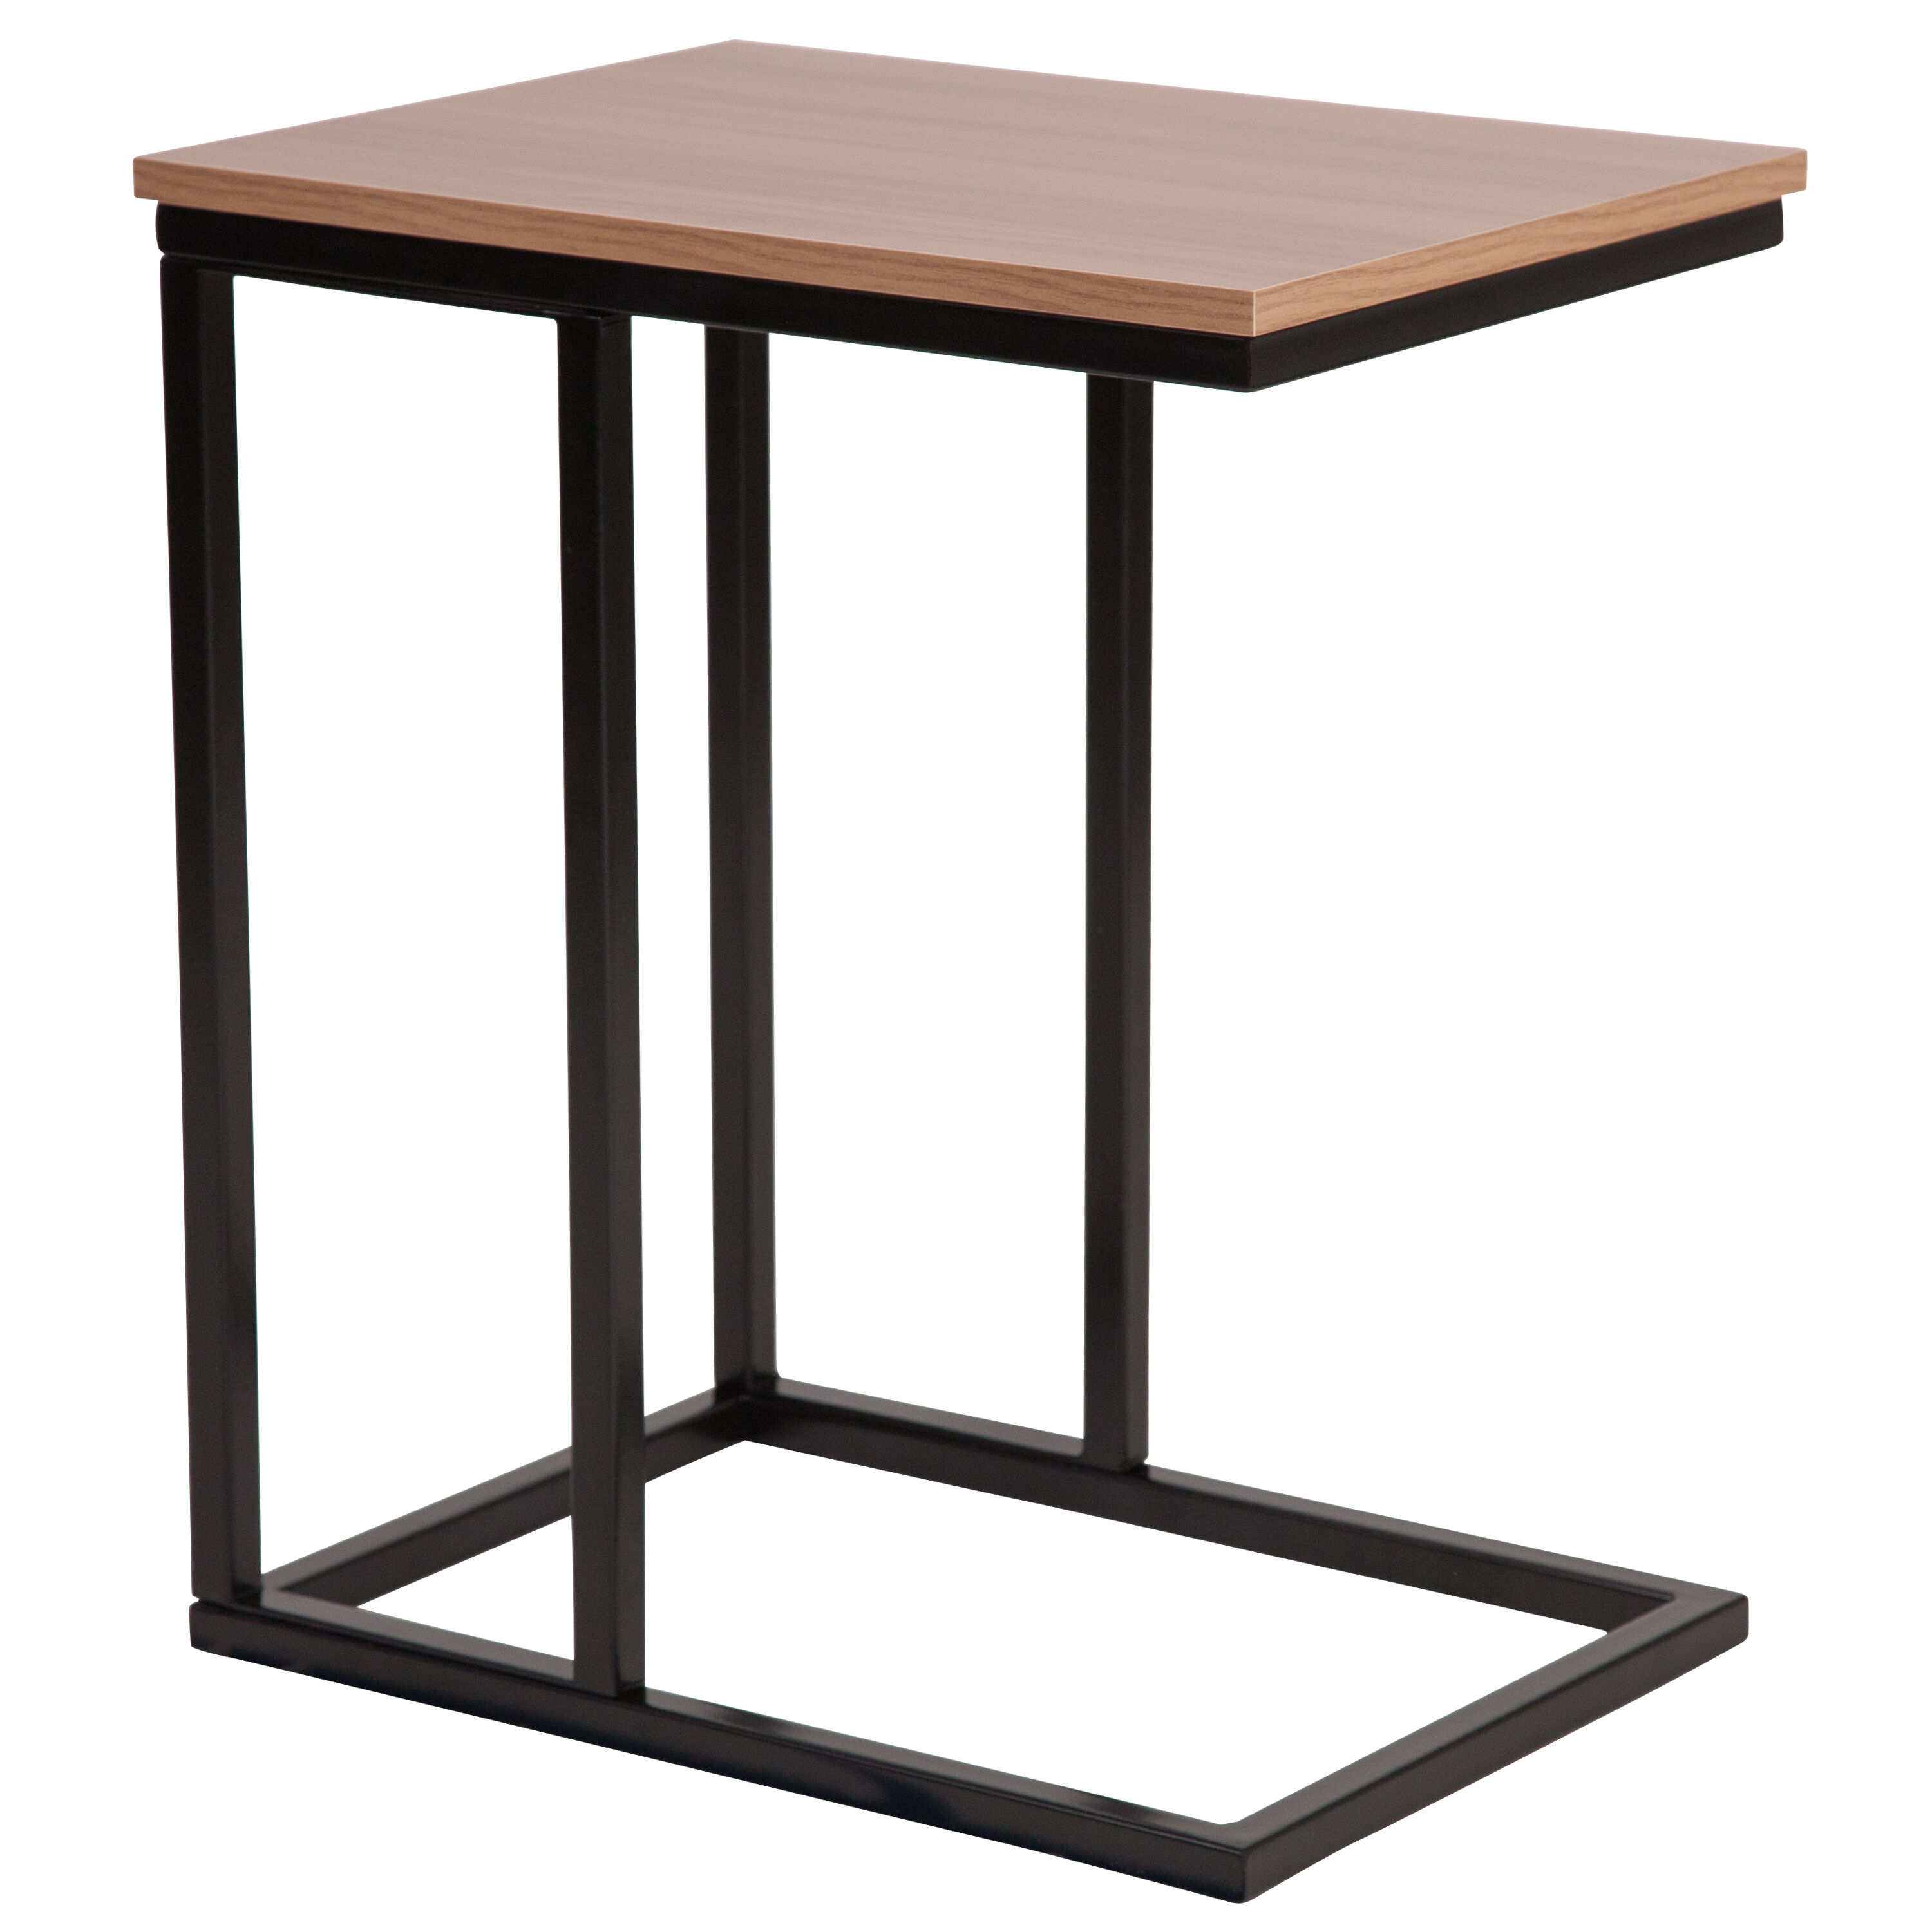 ... Our Aurora Rustic Wood Grain Finish Side Table With Black Metal  Cantilever Base Is On Sale ...